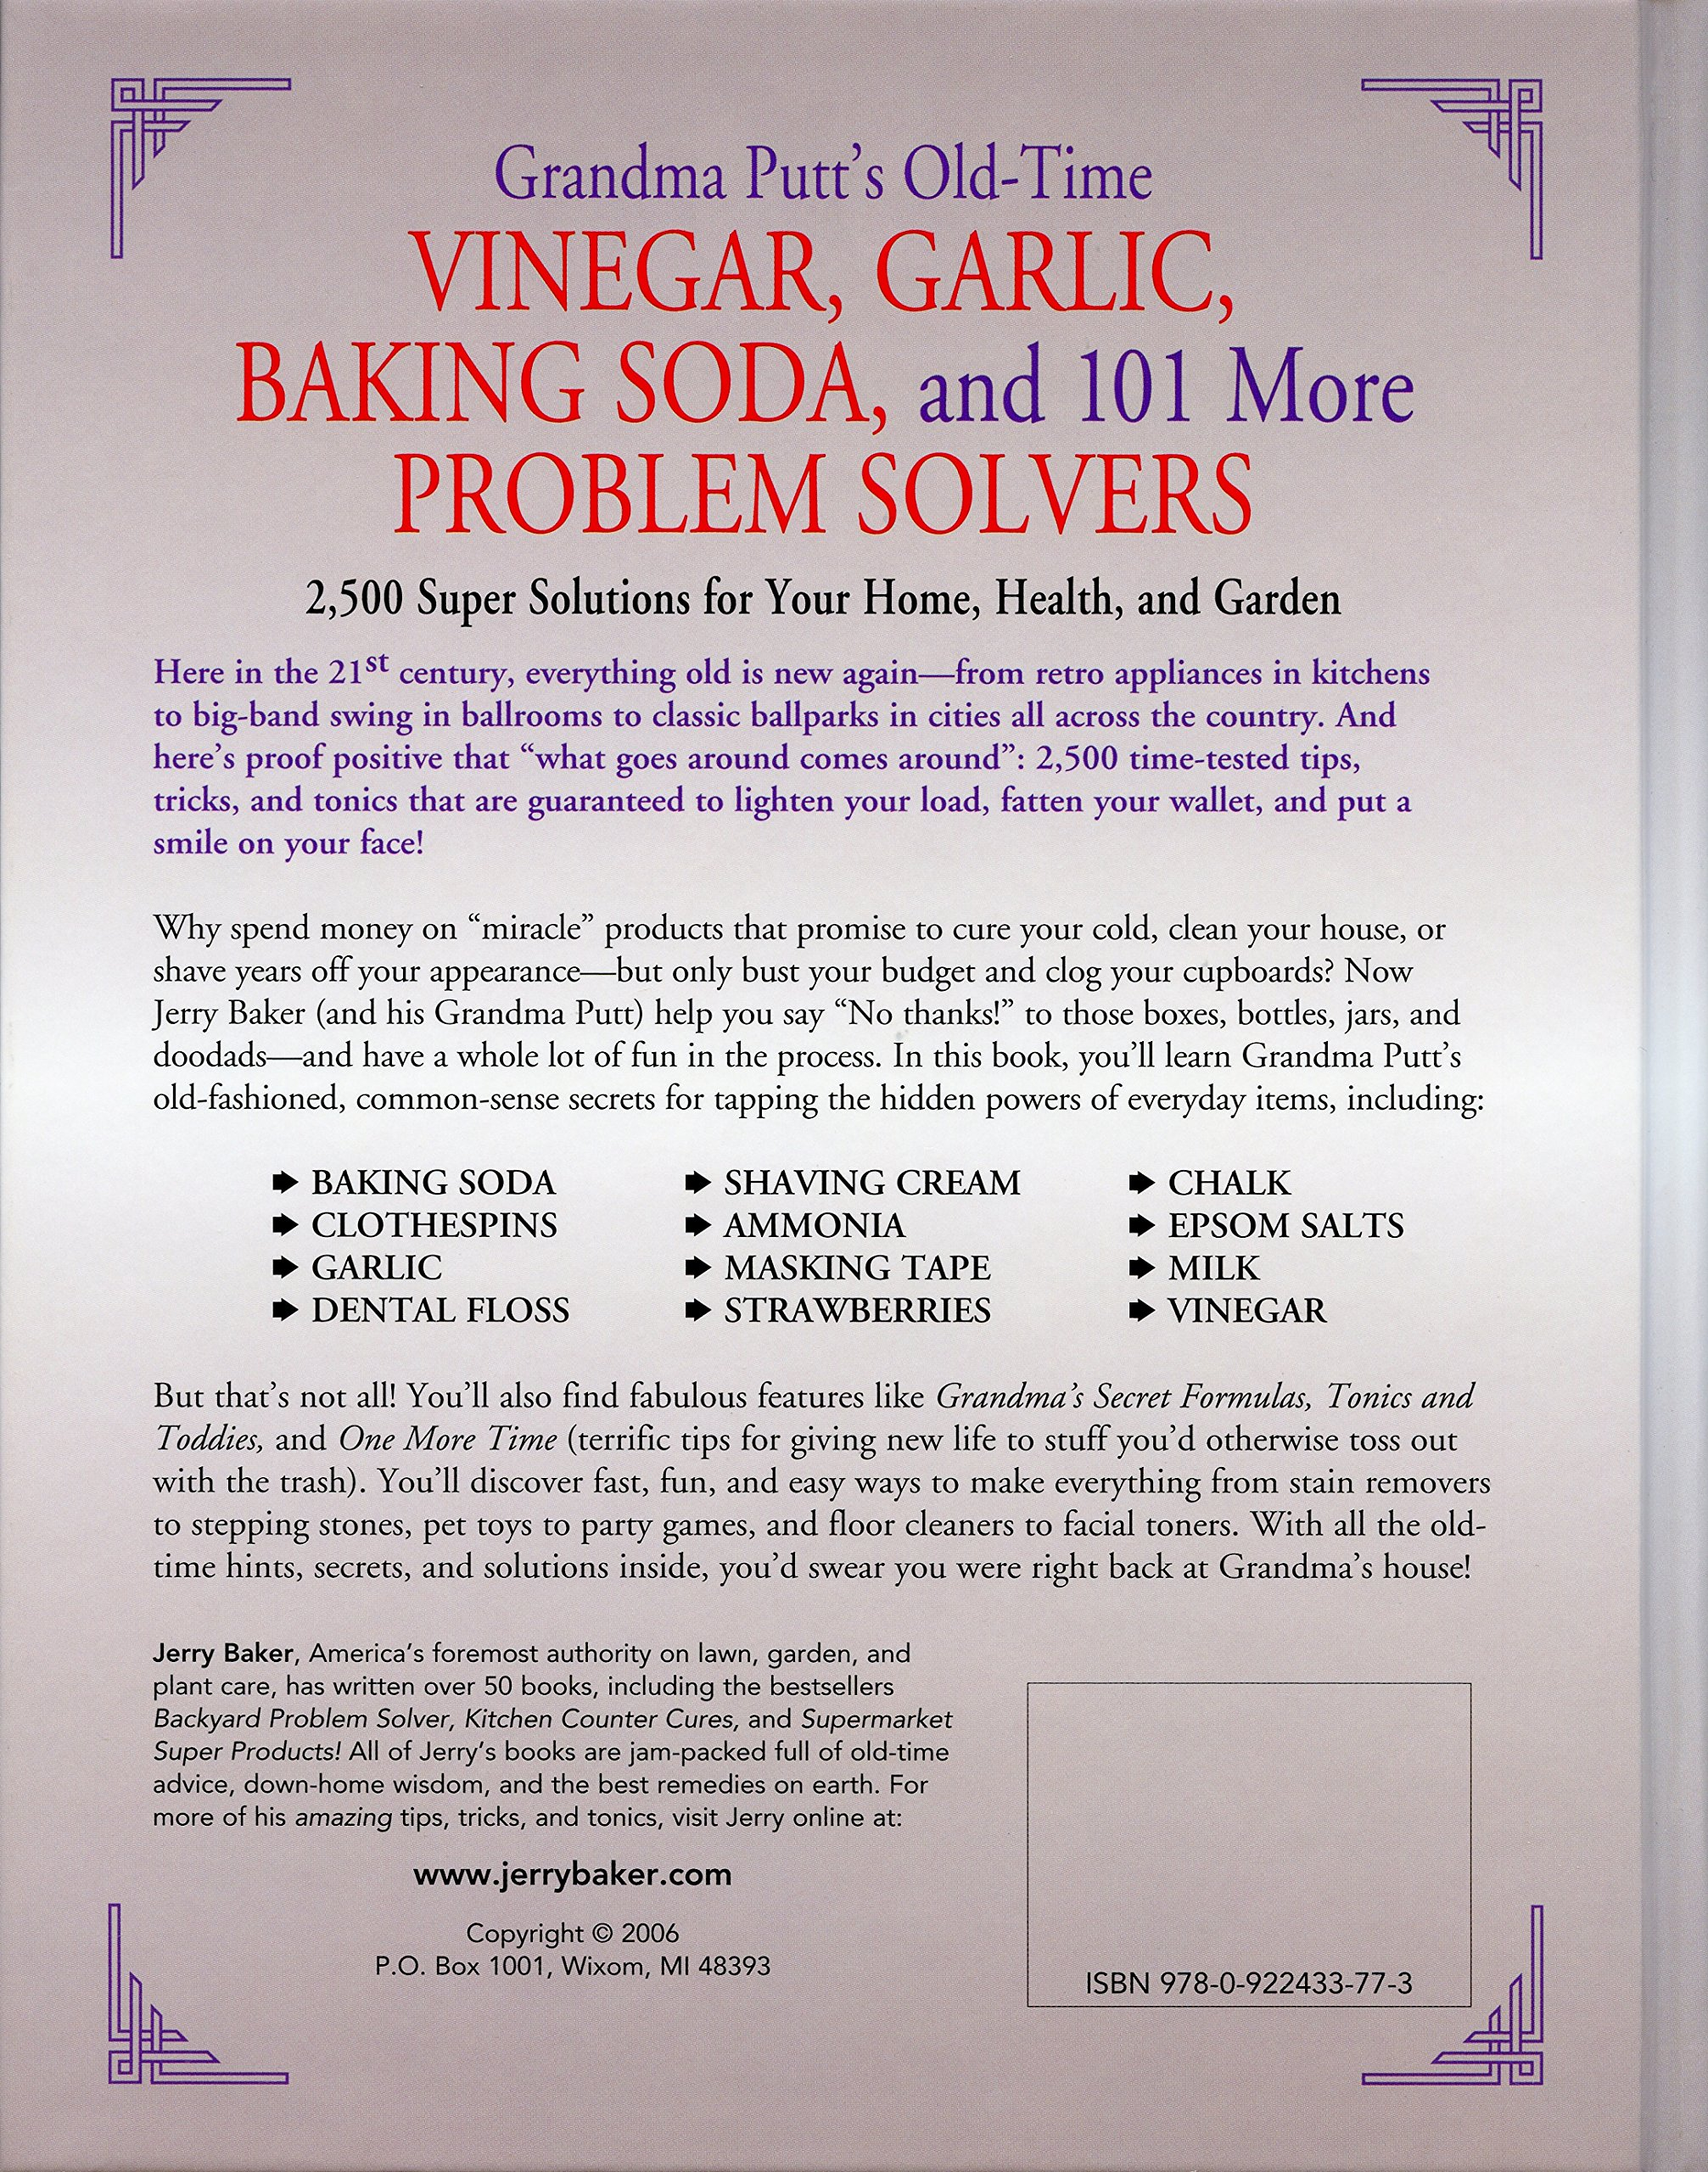 grandma putt s old time vinegar garlic baking soda and more grandma putt s old time vinegar garlic baking soda and 101 more problem solvers 2 500 super solutions for your home health and garden jerry baker